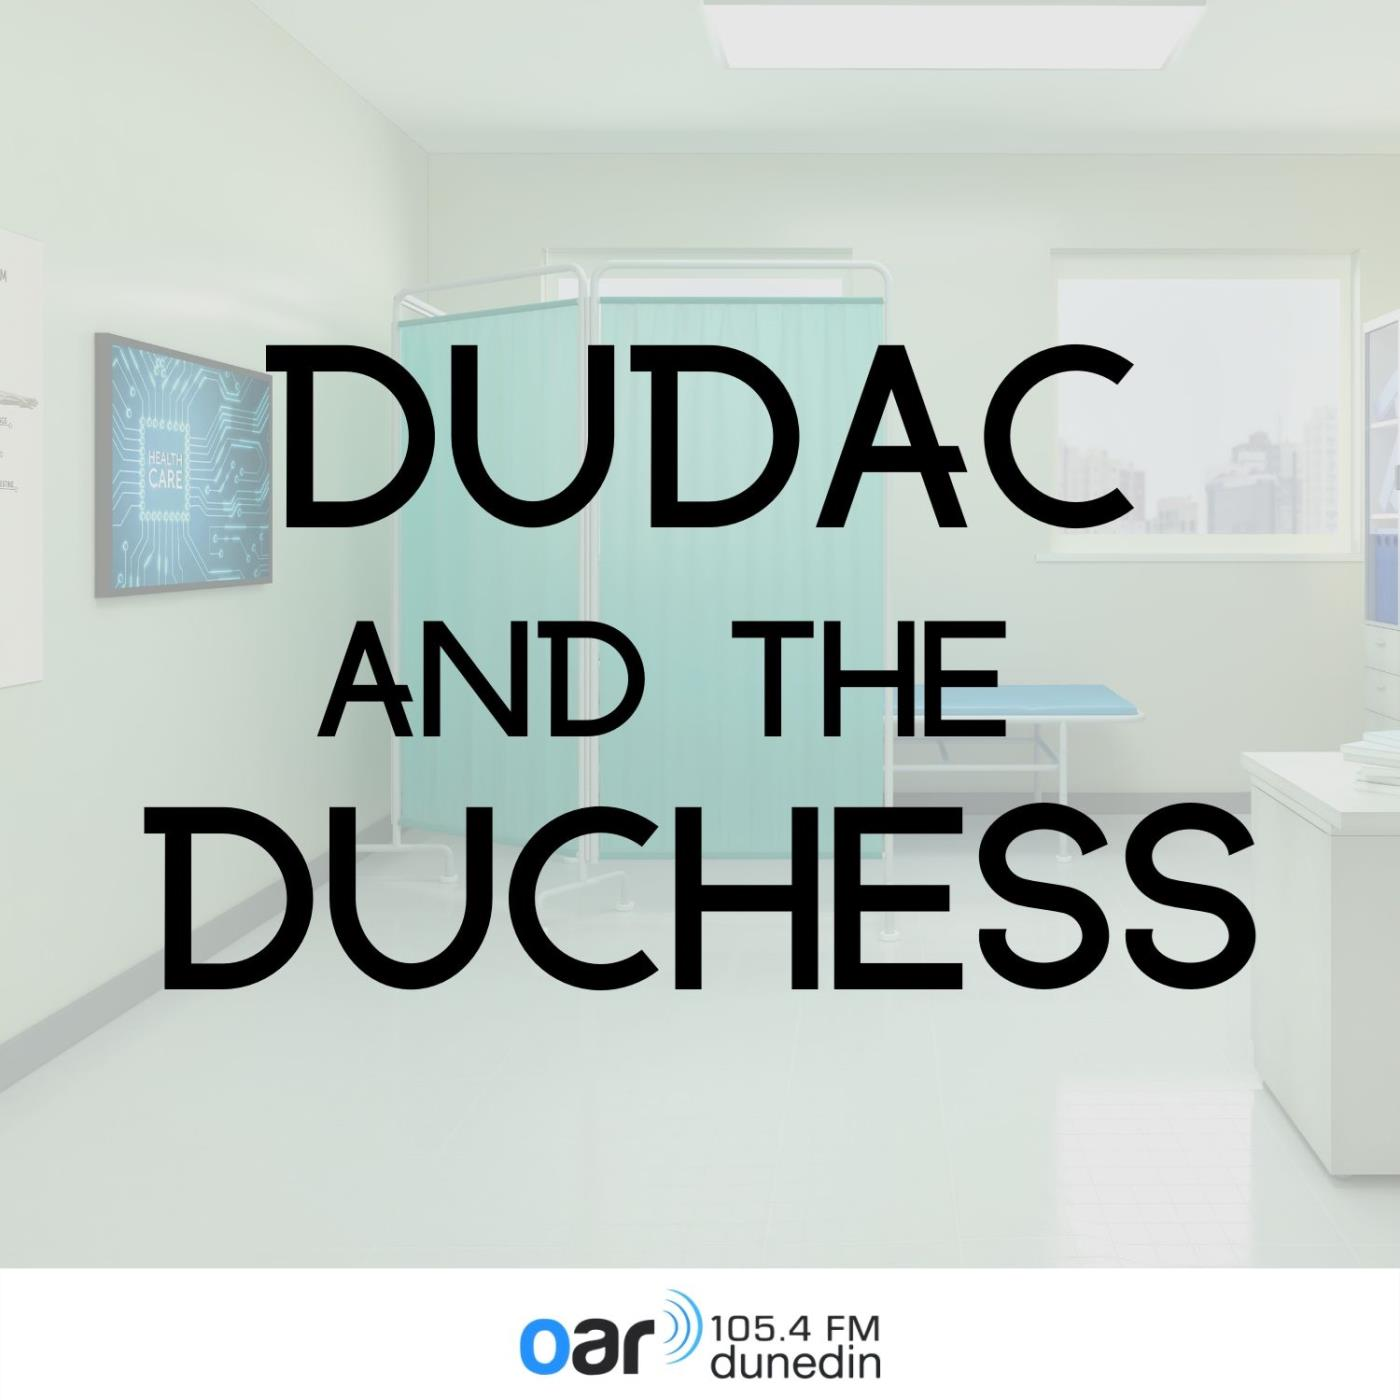 DUDAC and the Duchess